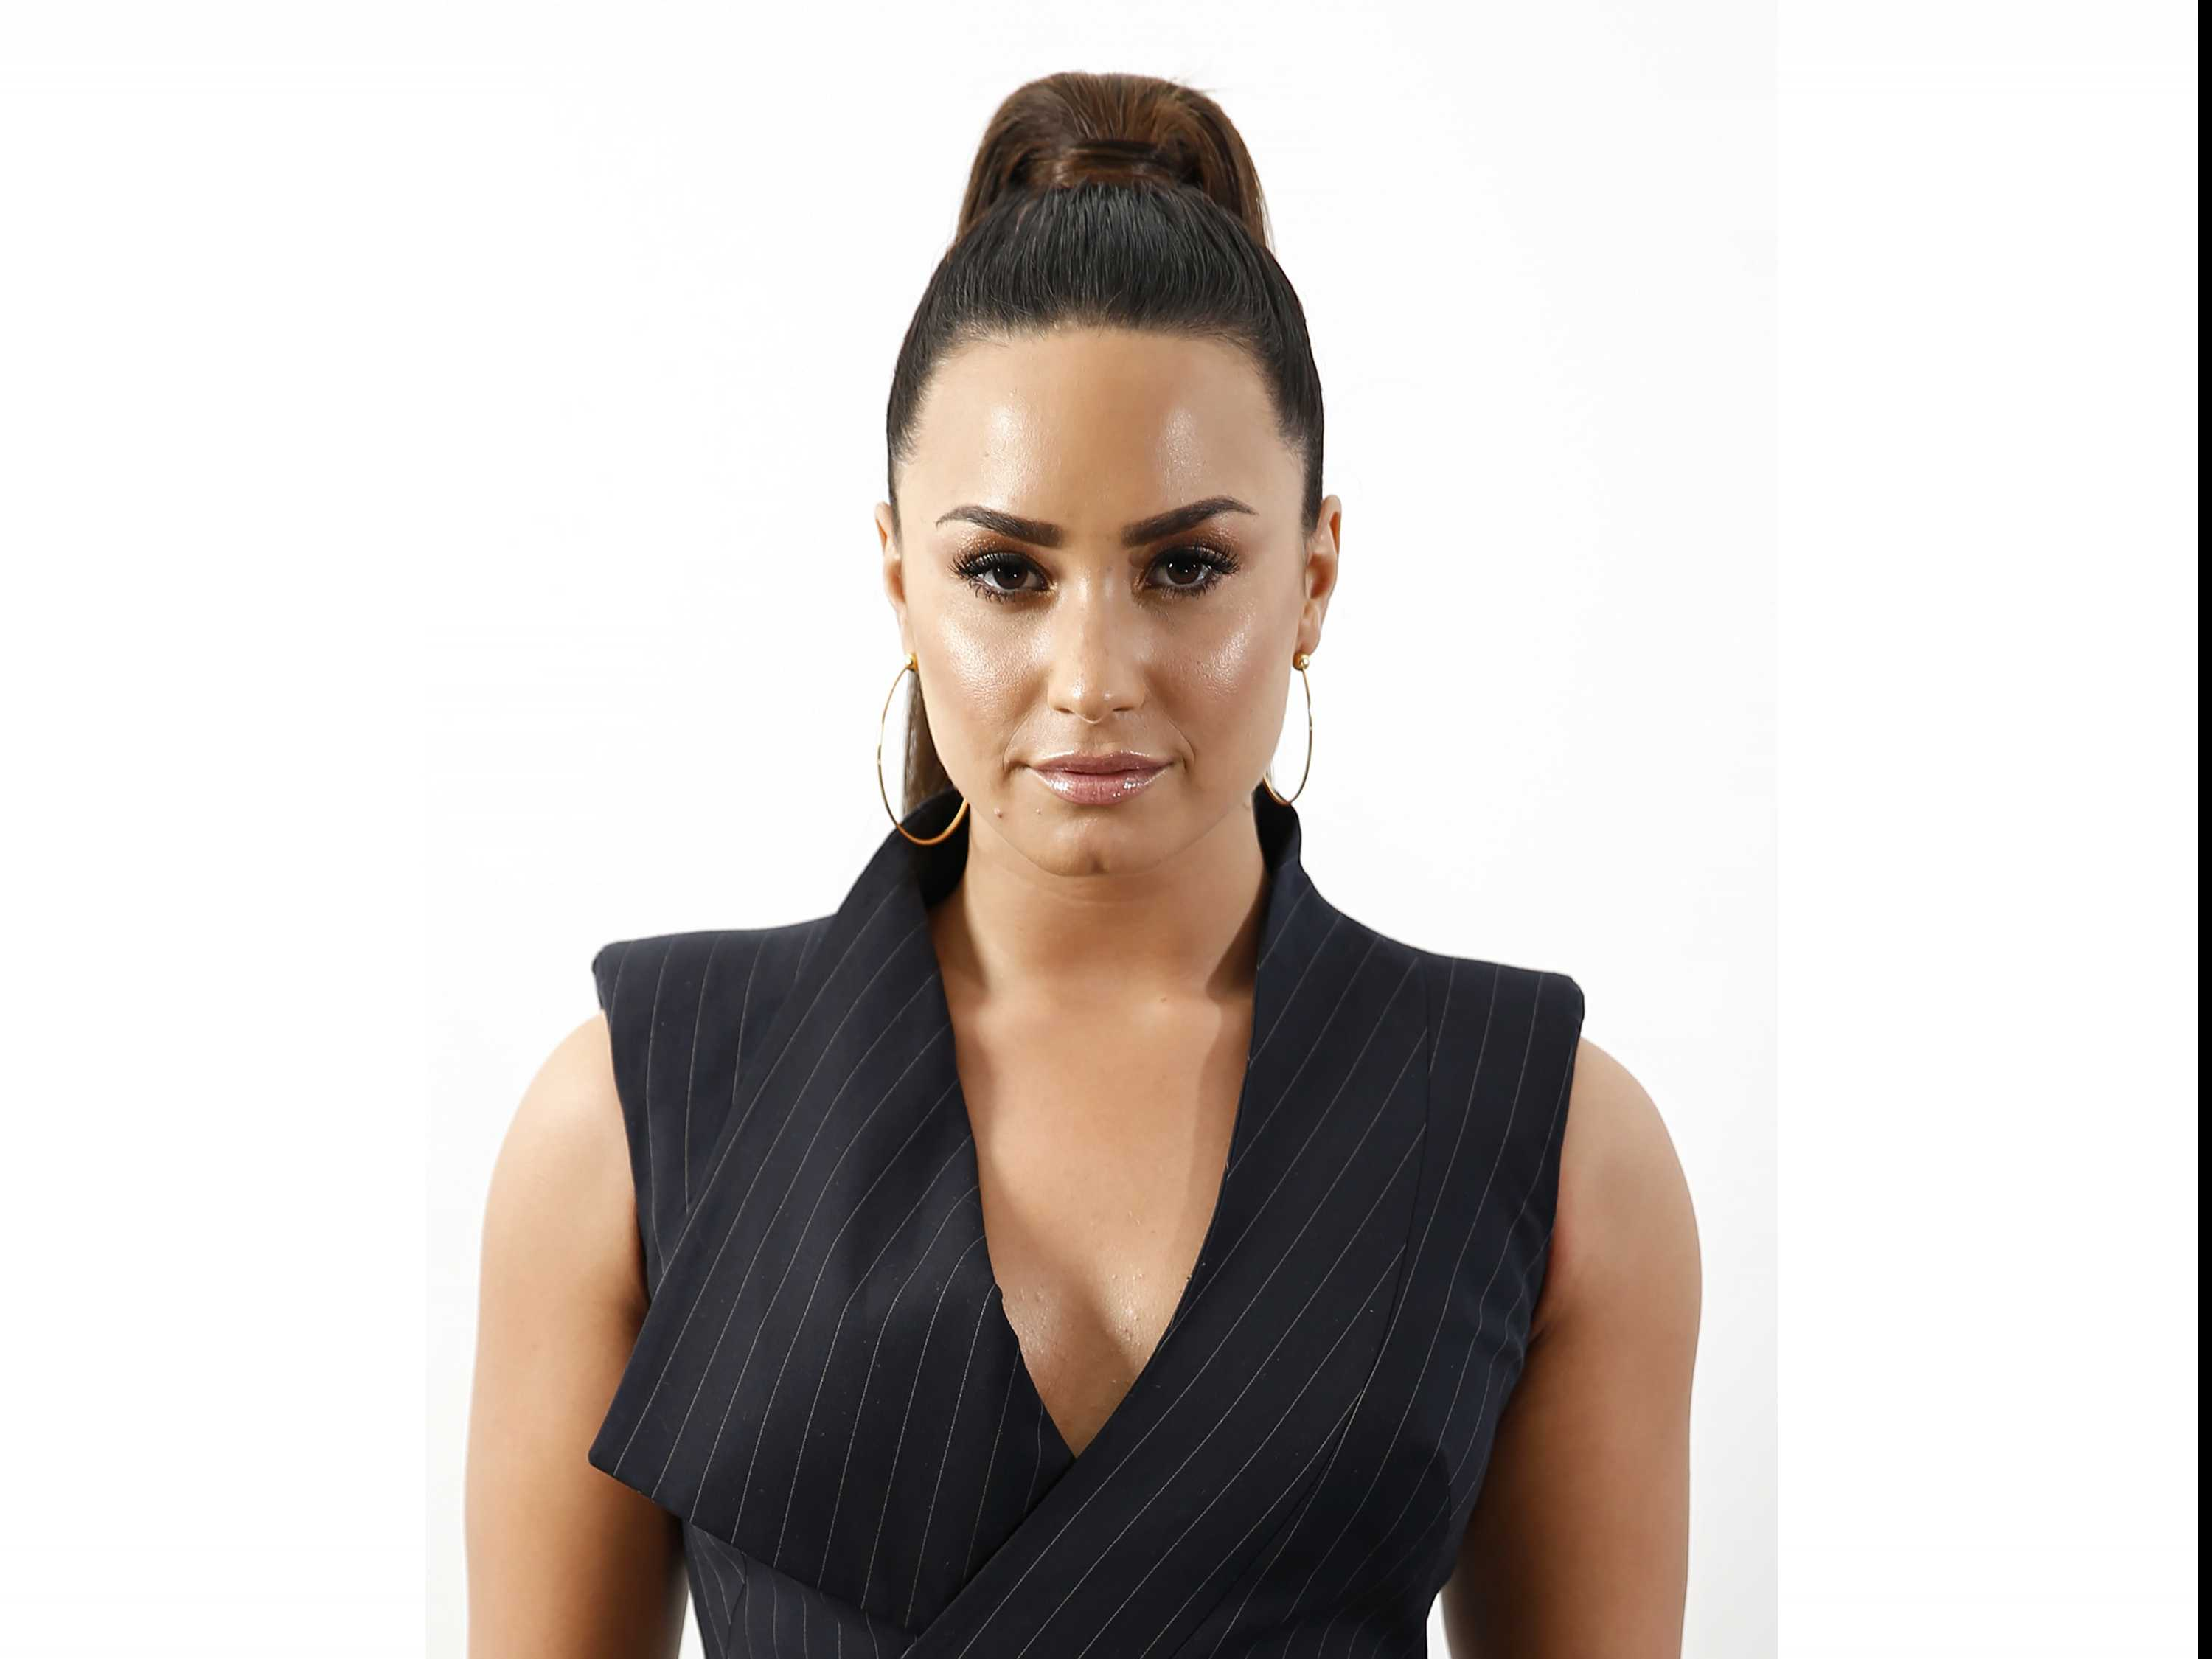 Lovato has Concert Activities for Mental Health Awareness